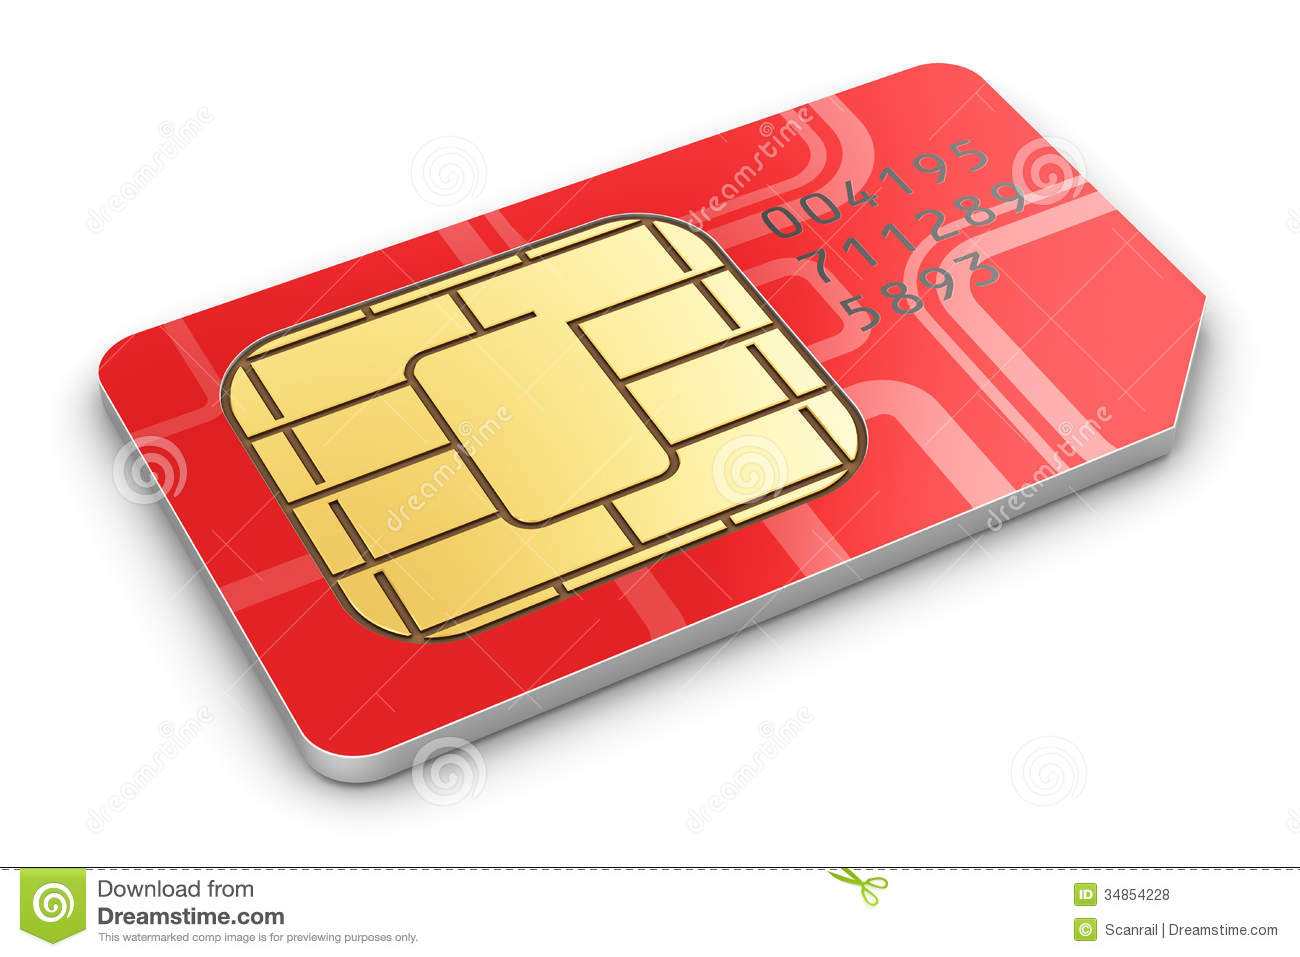 Creative Abstract Mobile Telecommunication Wireless Technology And Mobility Business Concept Macro View Of Single Red SIM Card For Phone Or